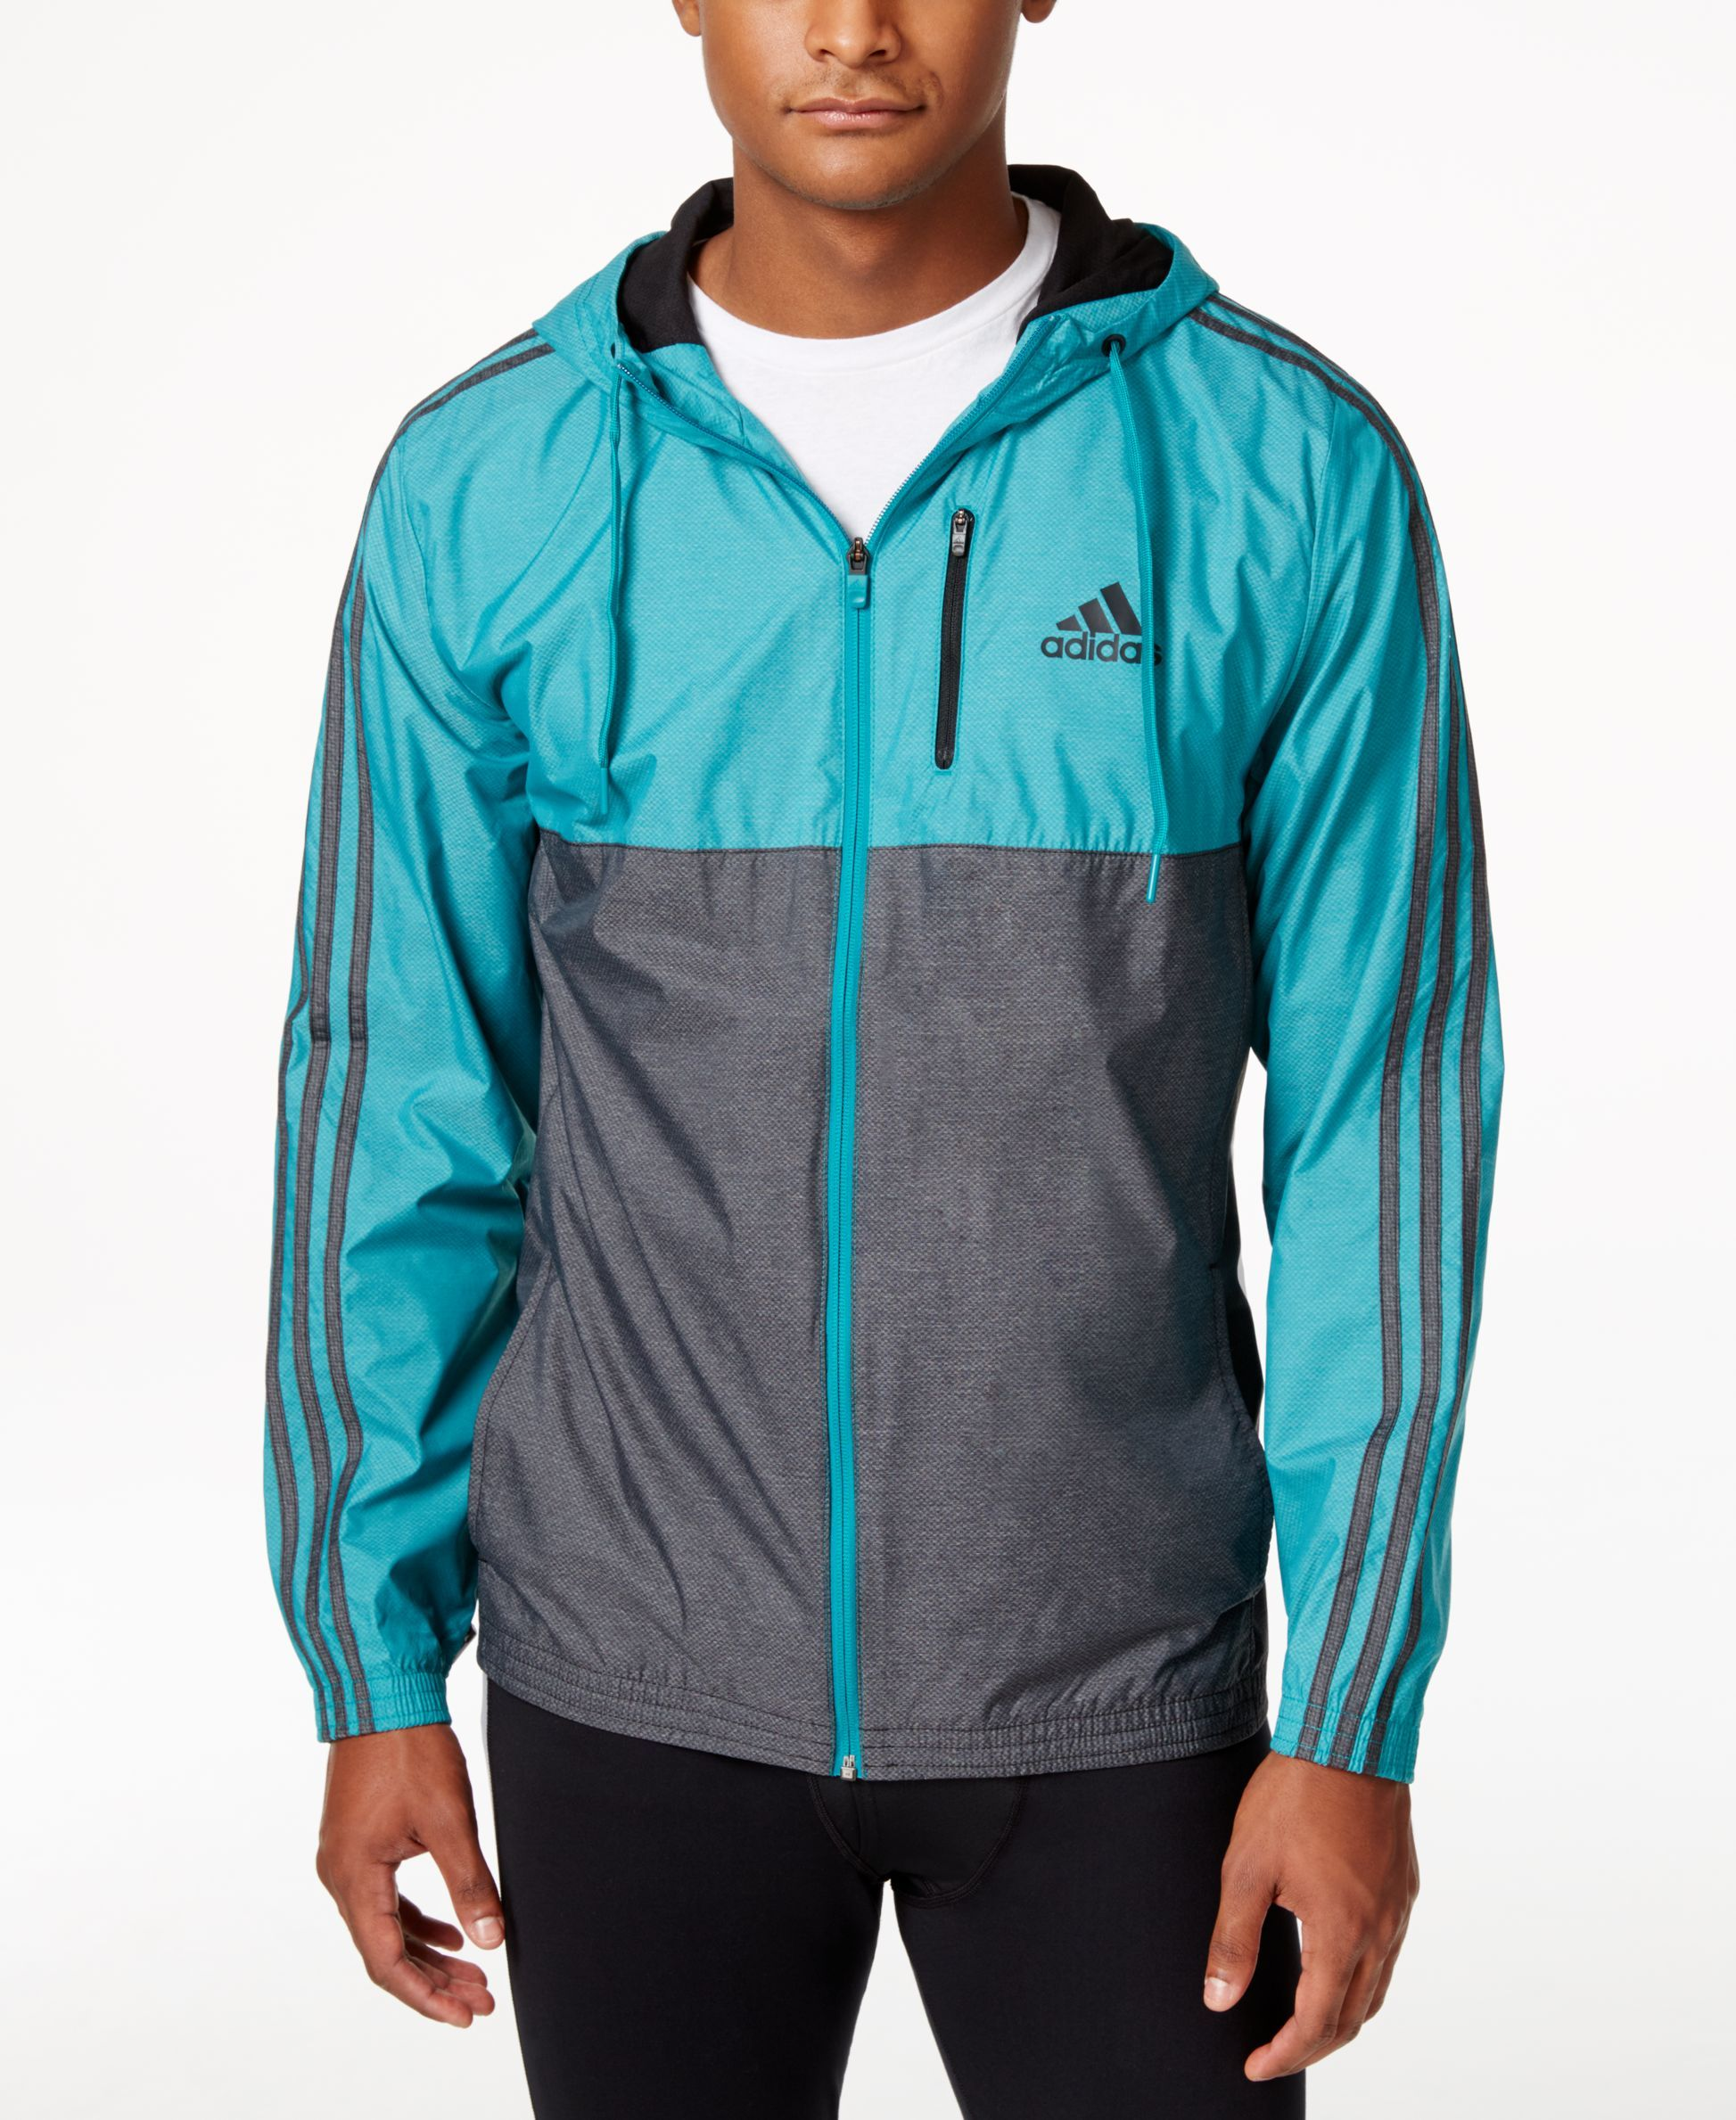 e9a9949db0cd adidas Men s Full-Zip Essential Woven Jacket